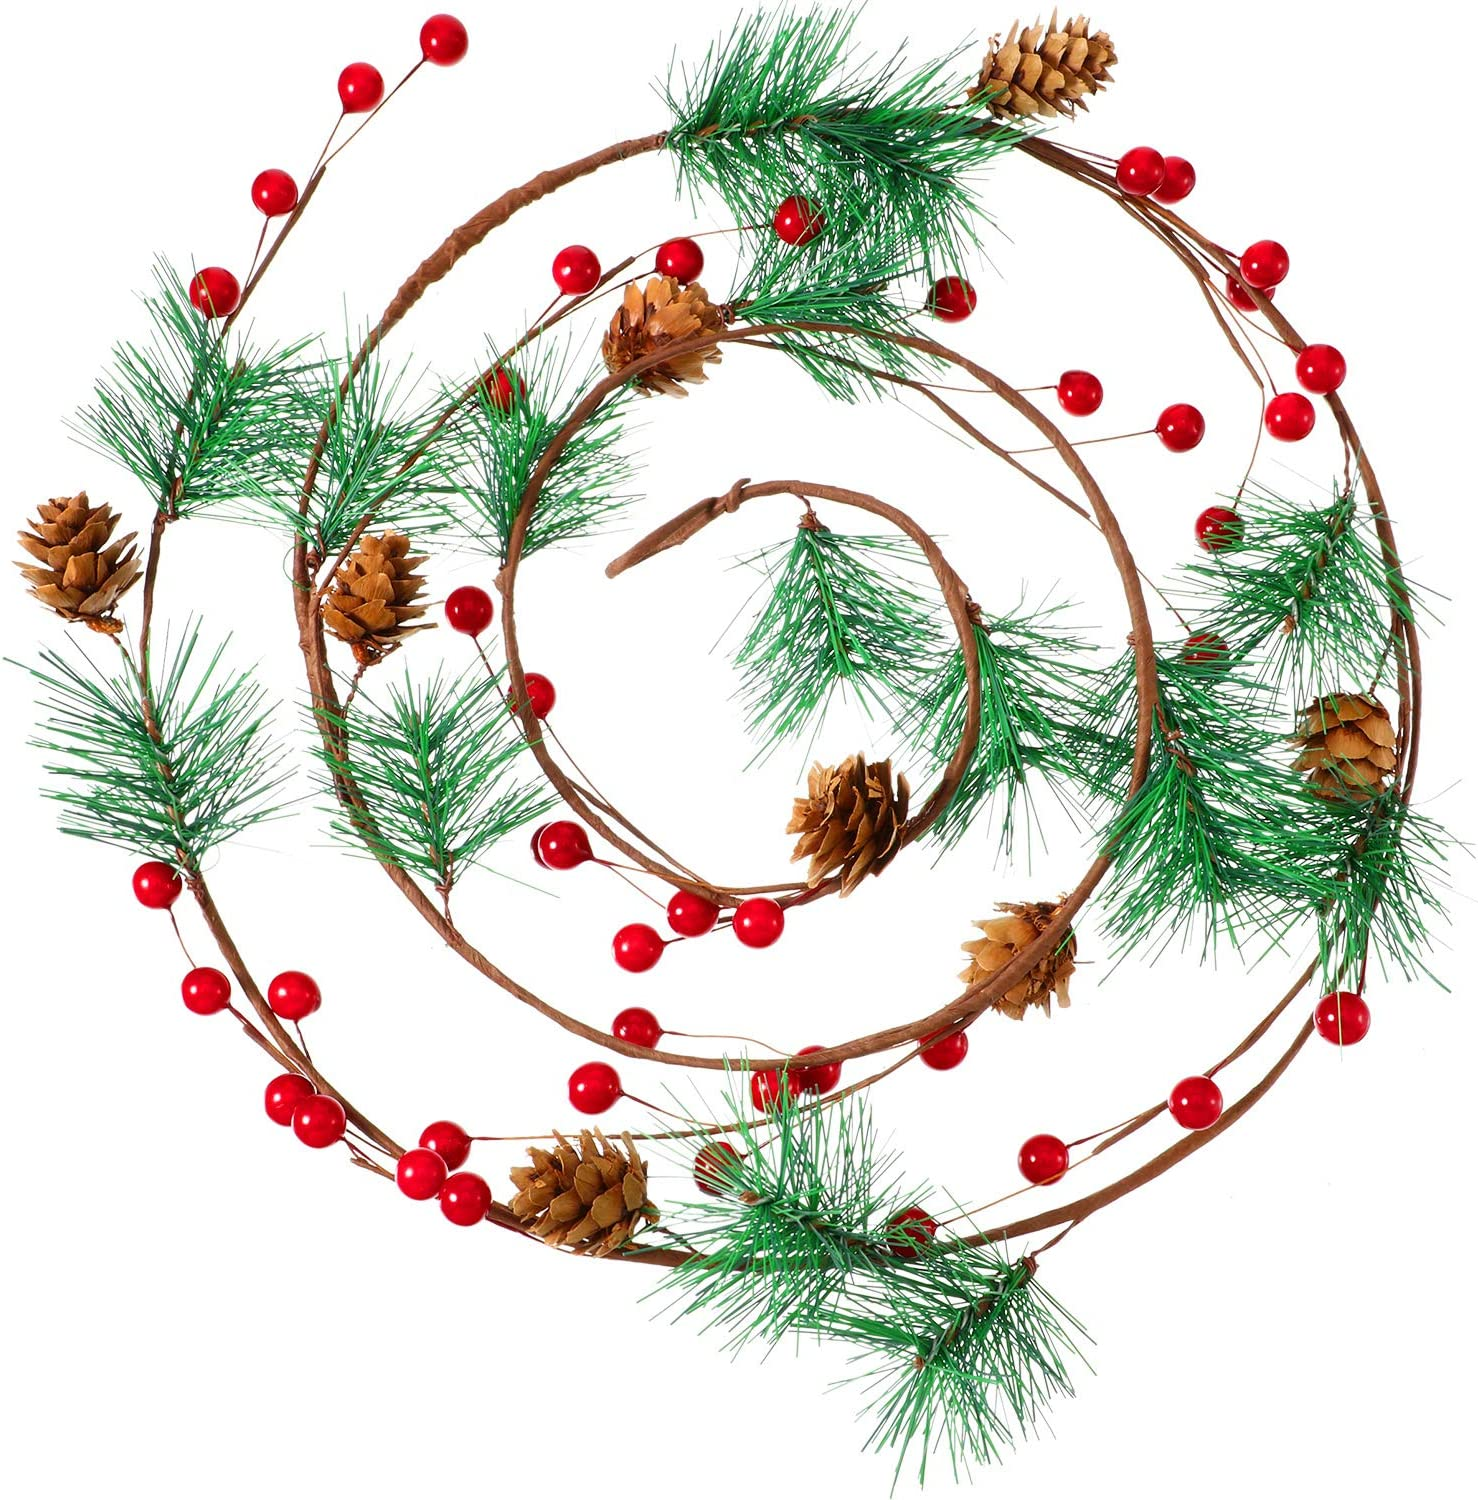 6 Feet Christmas Garland Artificial Red Berry Pine Needle Holiday Greenery Wreath for Fireplace Home Christmas Indoor Outdoor Decorations, 2 Pieces